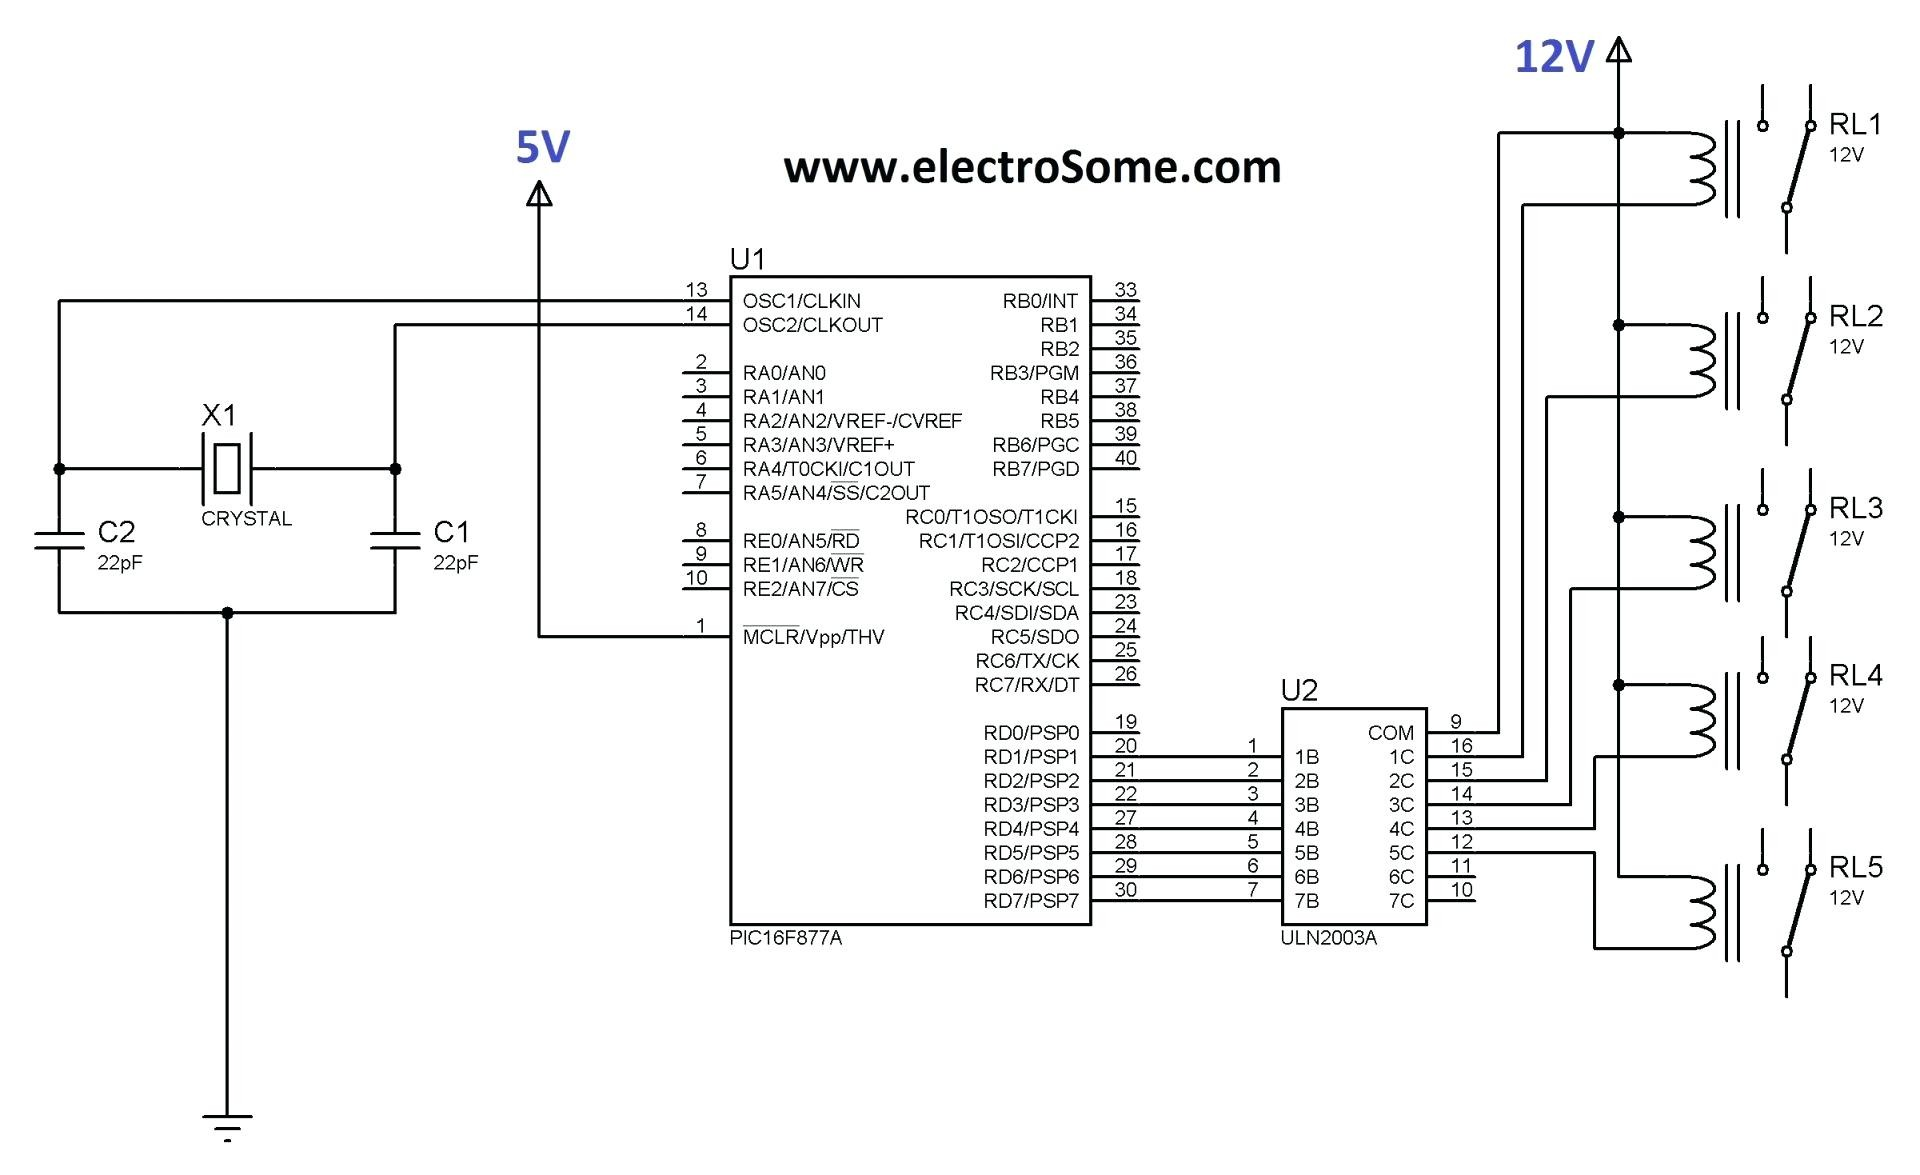 hight resolution of hvac fan relay wiring diagram hvac fan relay wiring diagram symbols aircraft i just purchased a